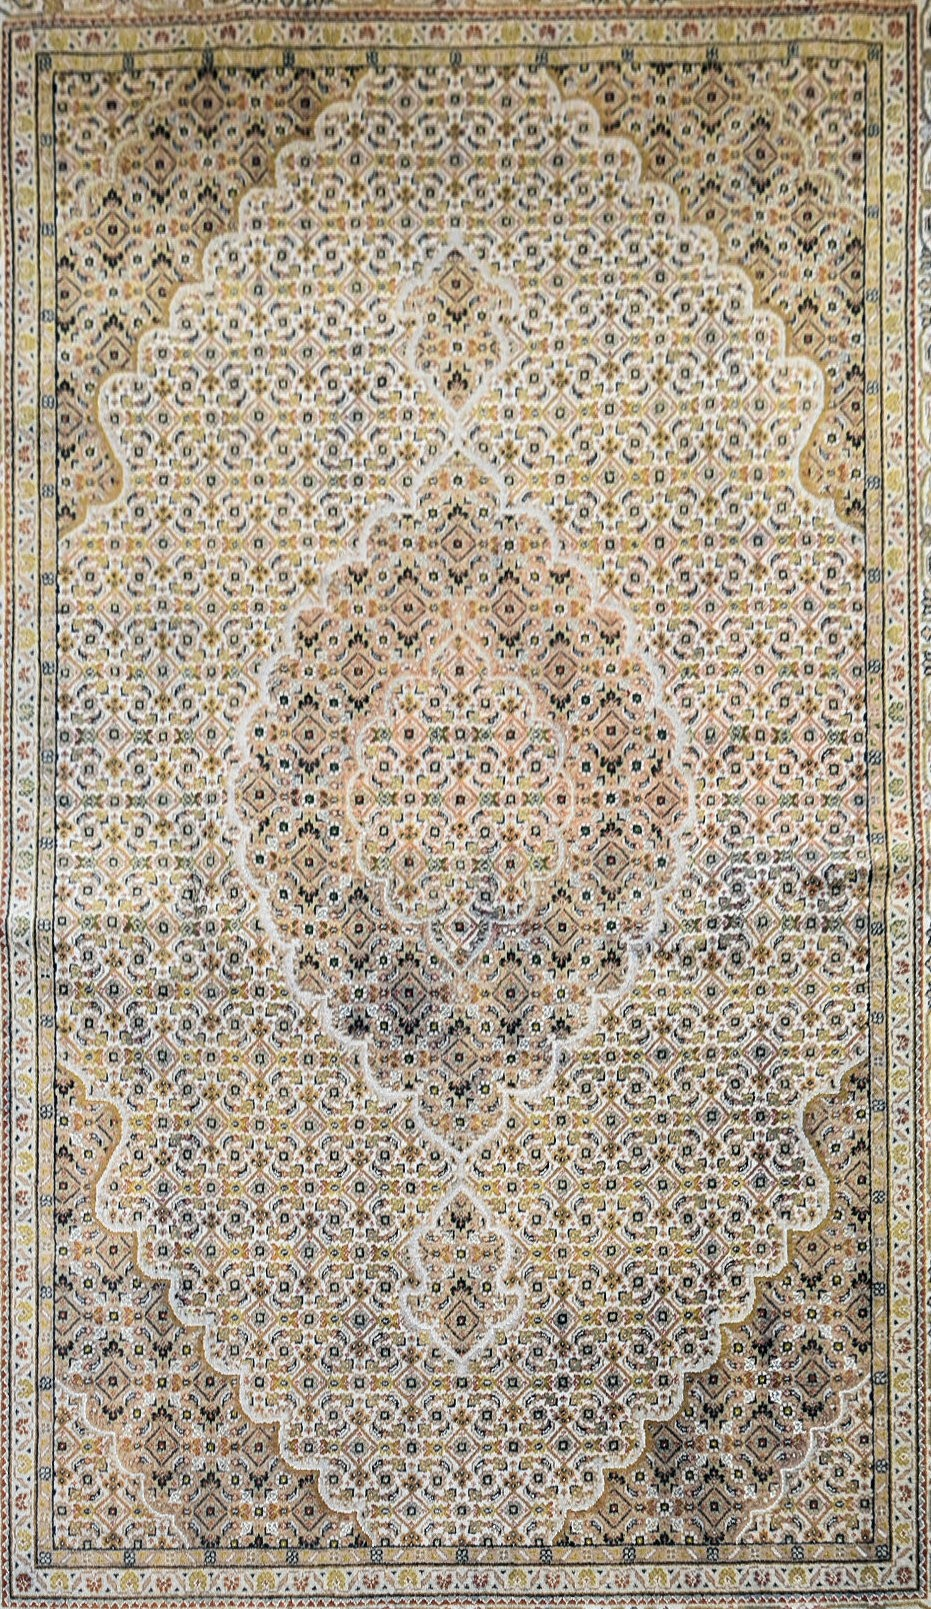 A silk & wool Tabriz style carpet with central medallion and repeating floral design across the fawn - Image 2 of 4